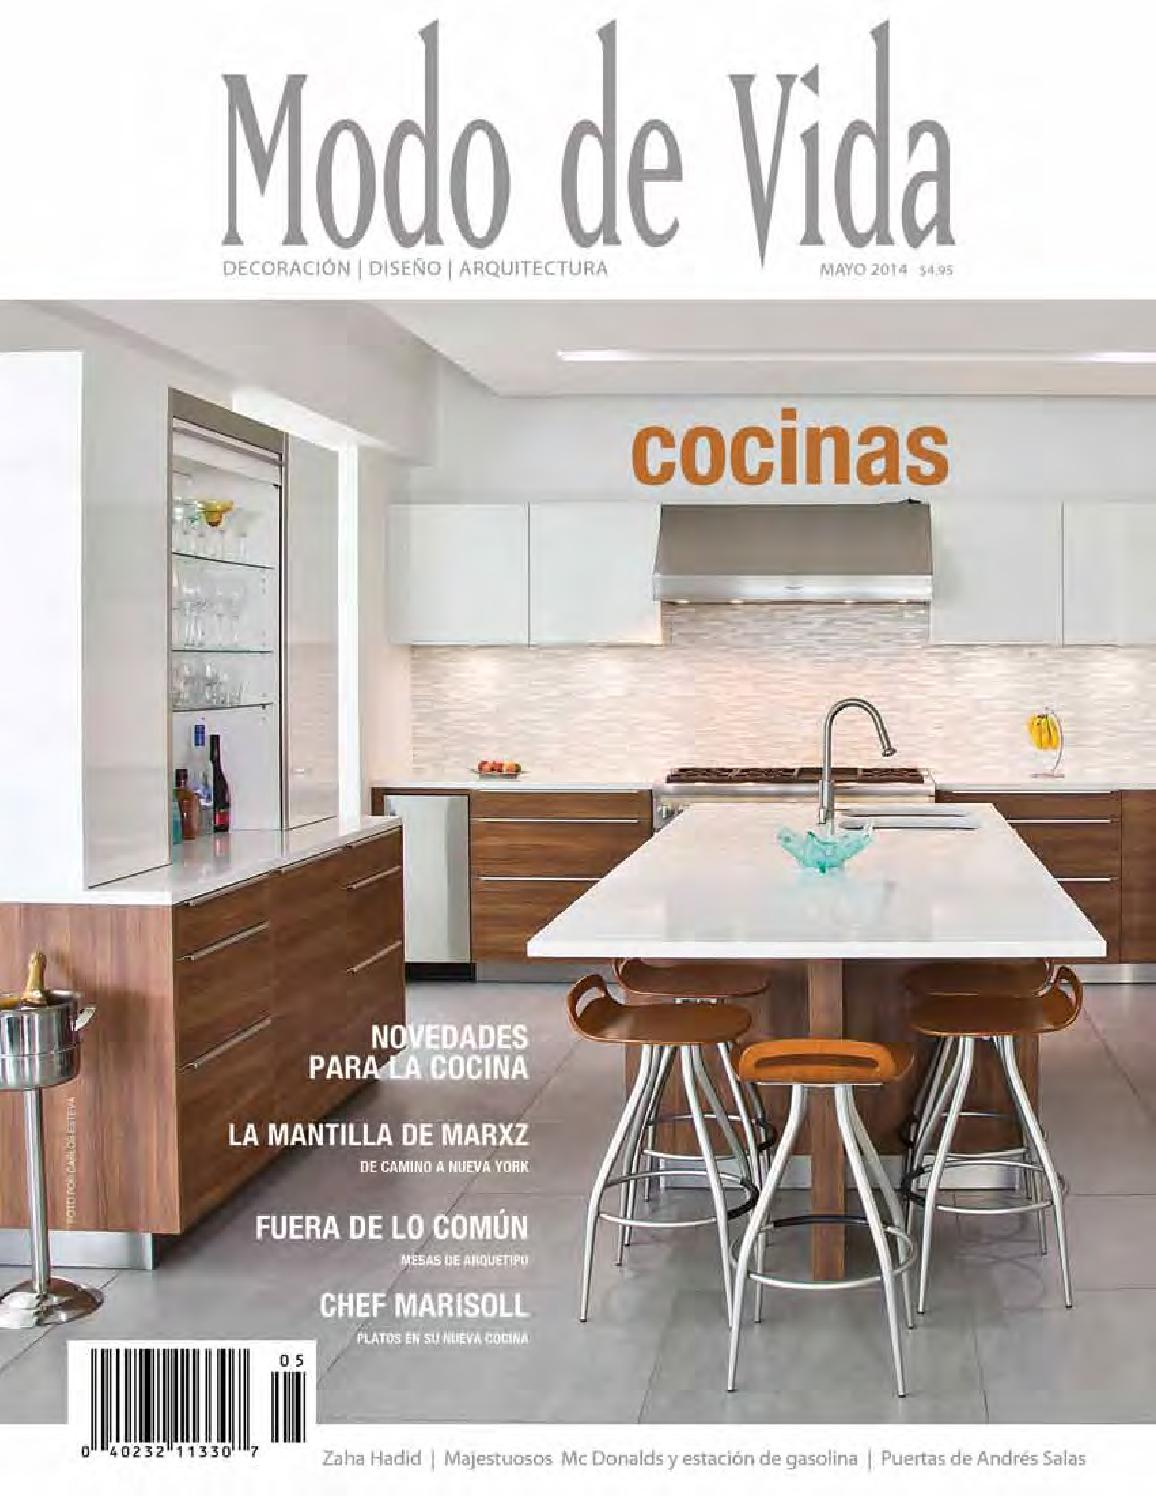 Mayo 2014 by Modo de Vida - issuu